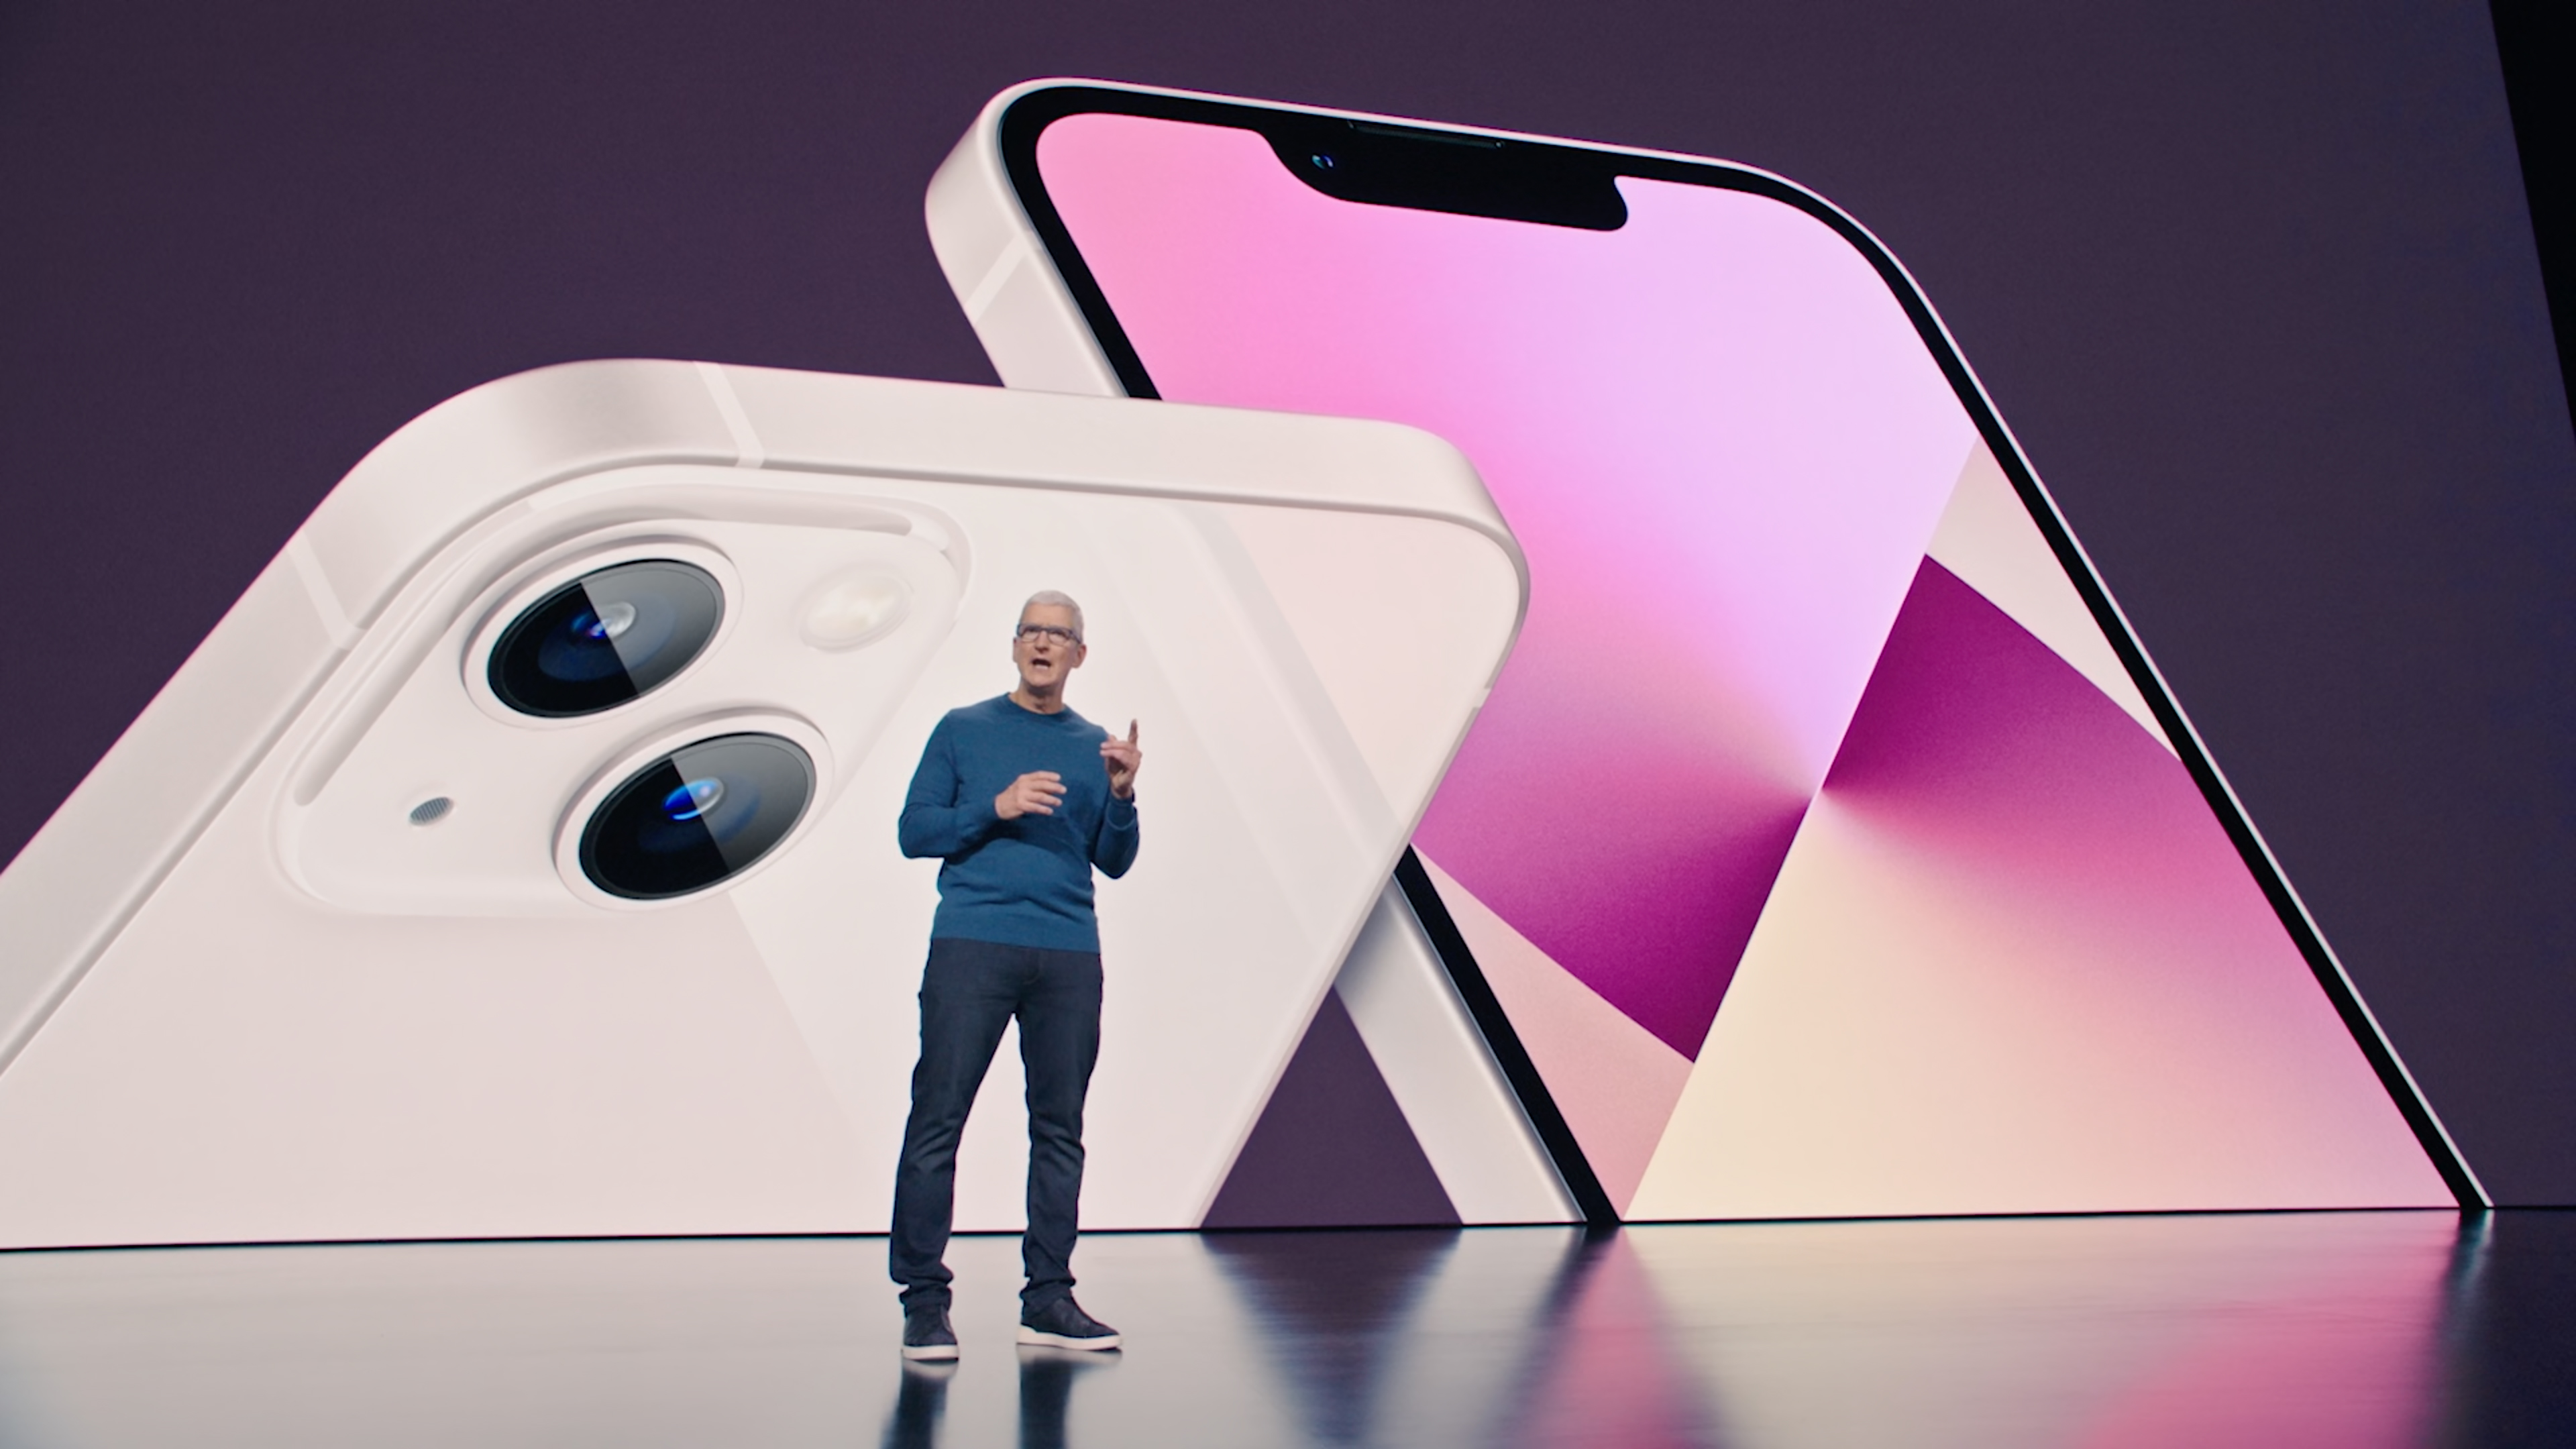 Apple's best iPhone 13 features are the trade-in offers, not the specs